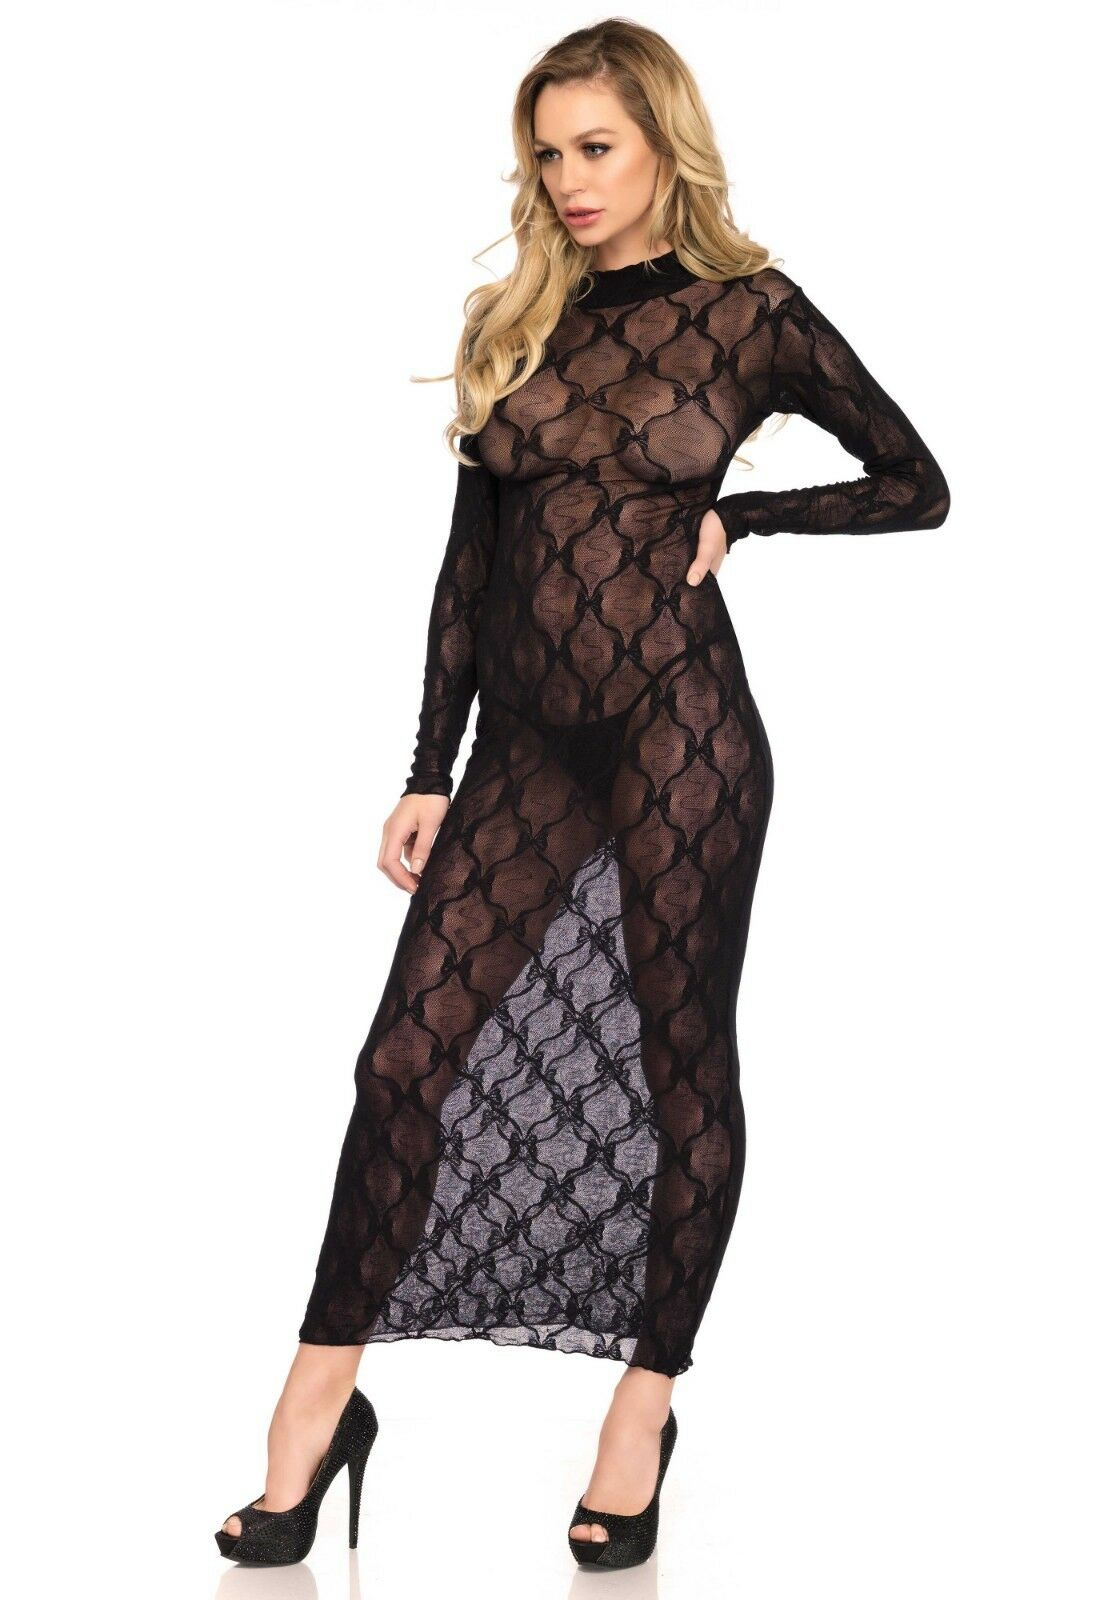 Leg Avenue Lace Long Sleeved Dress | One size